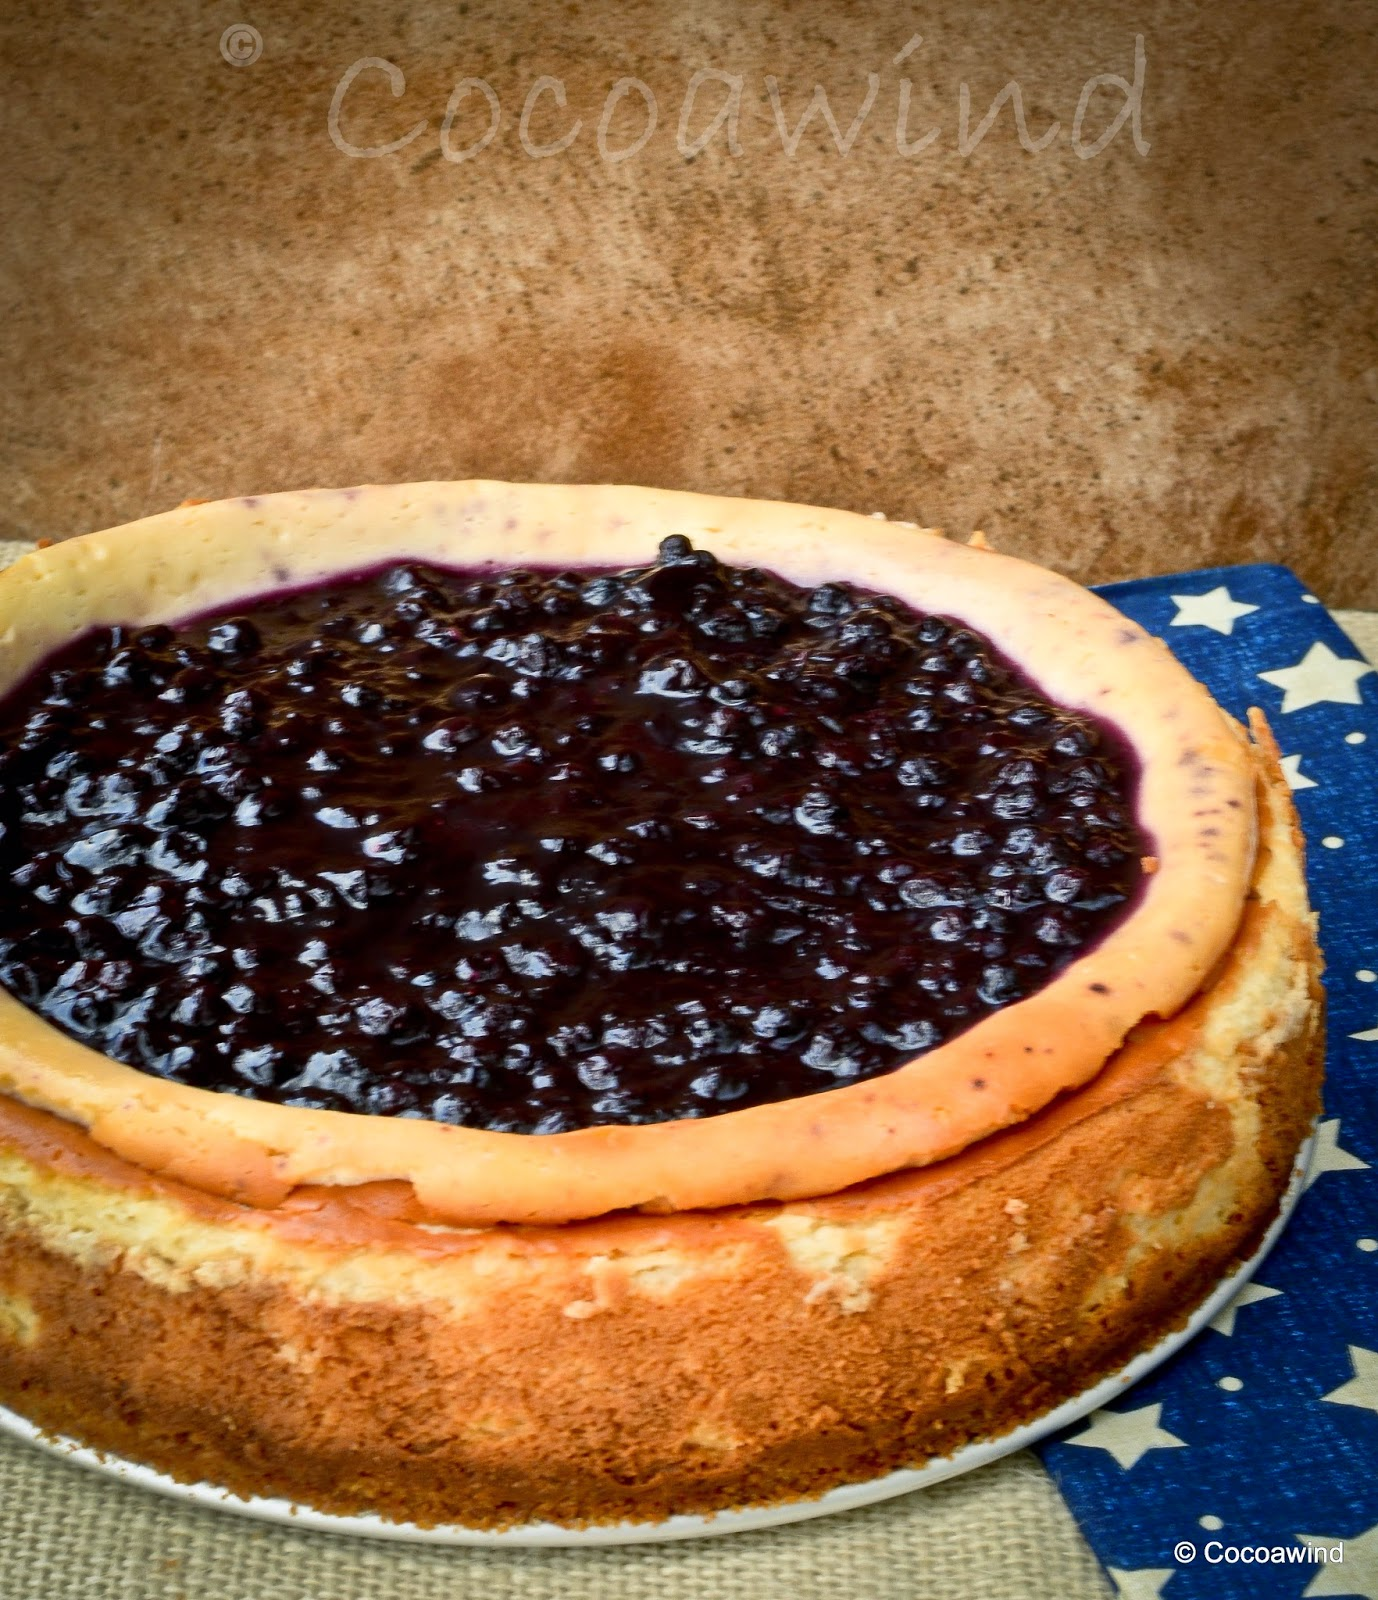 Blueberry Cheesecake with Blueberry Compote Topping